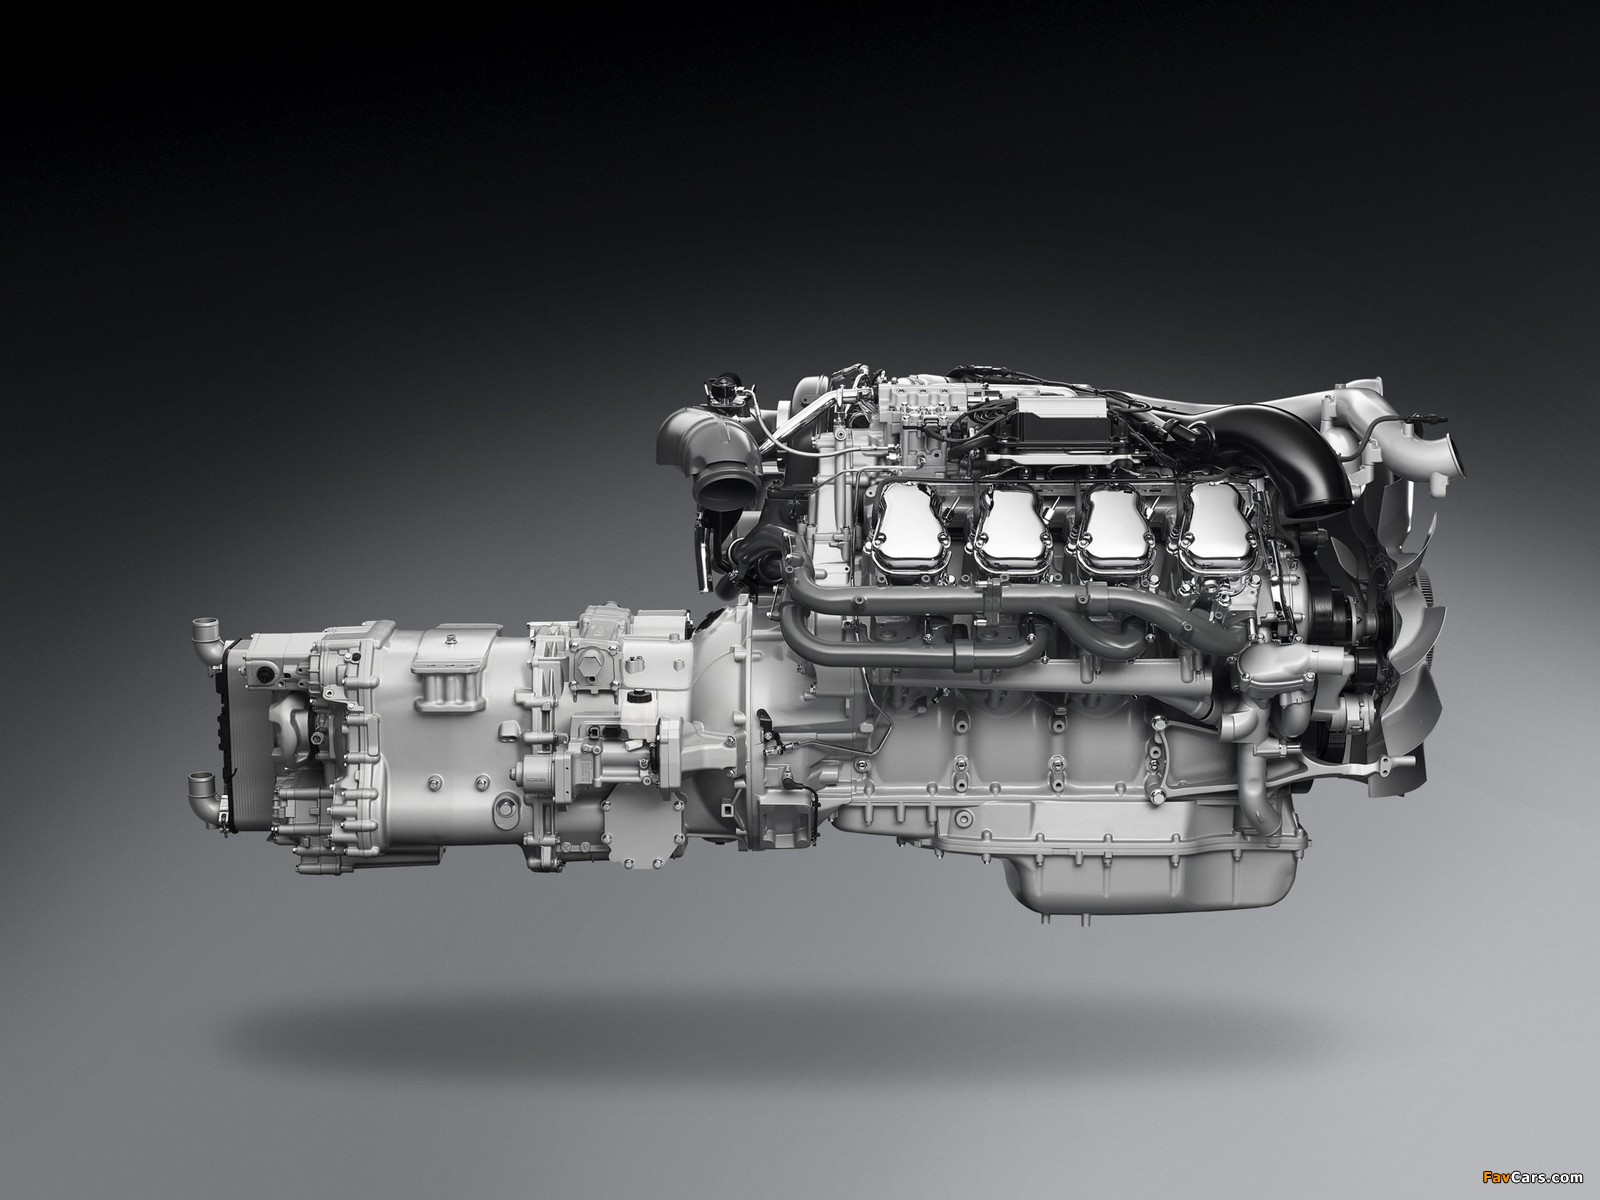 Engines Scania 730 hp 16 4-litre Euro 5 pictures (1600x1200)